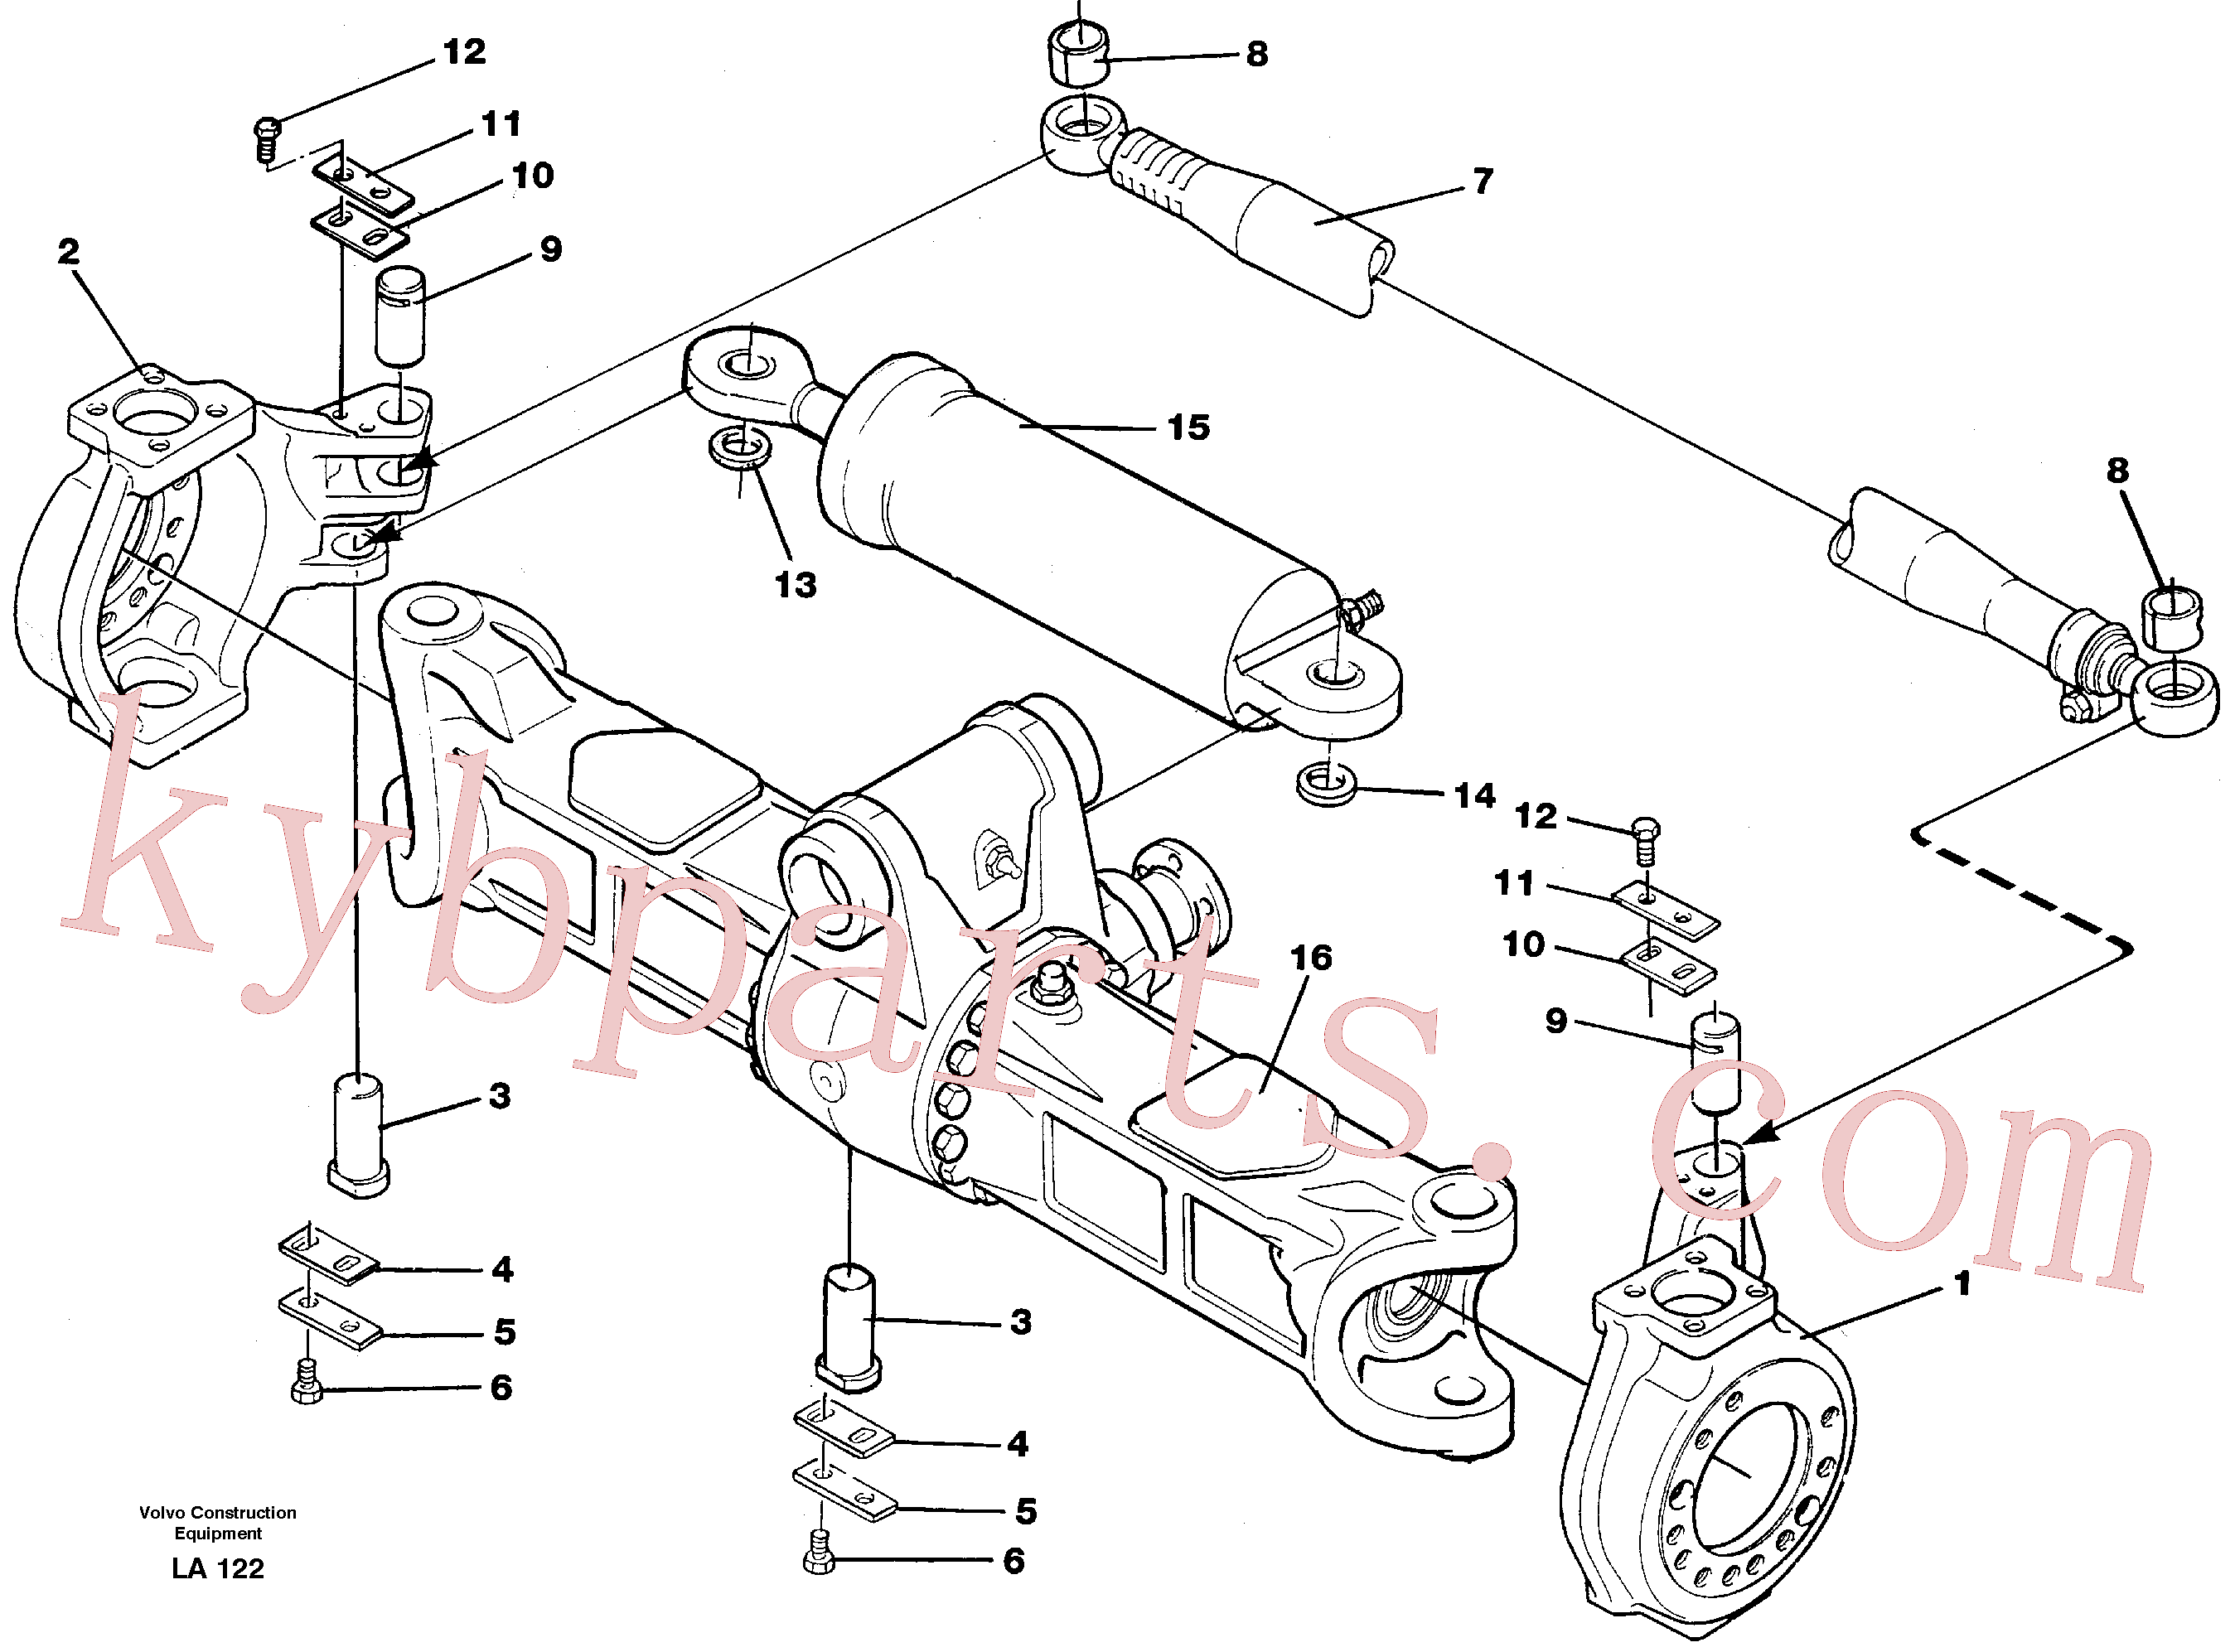 VOE14212414 for Volvo Knuckle ret and parallel stay(LA122 assembly)